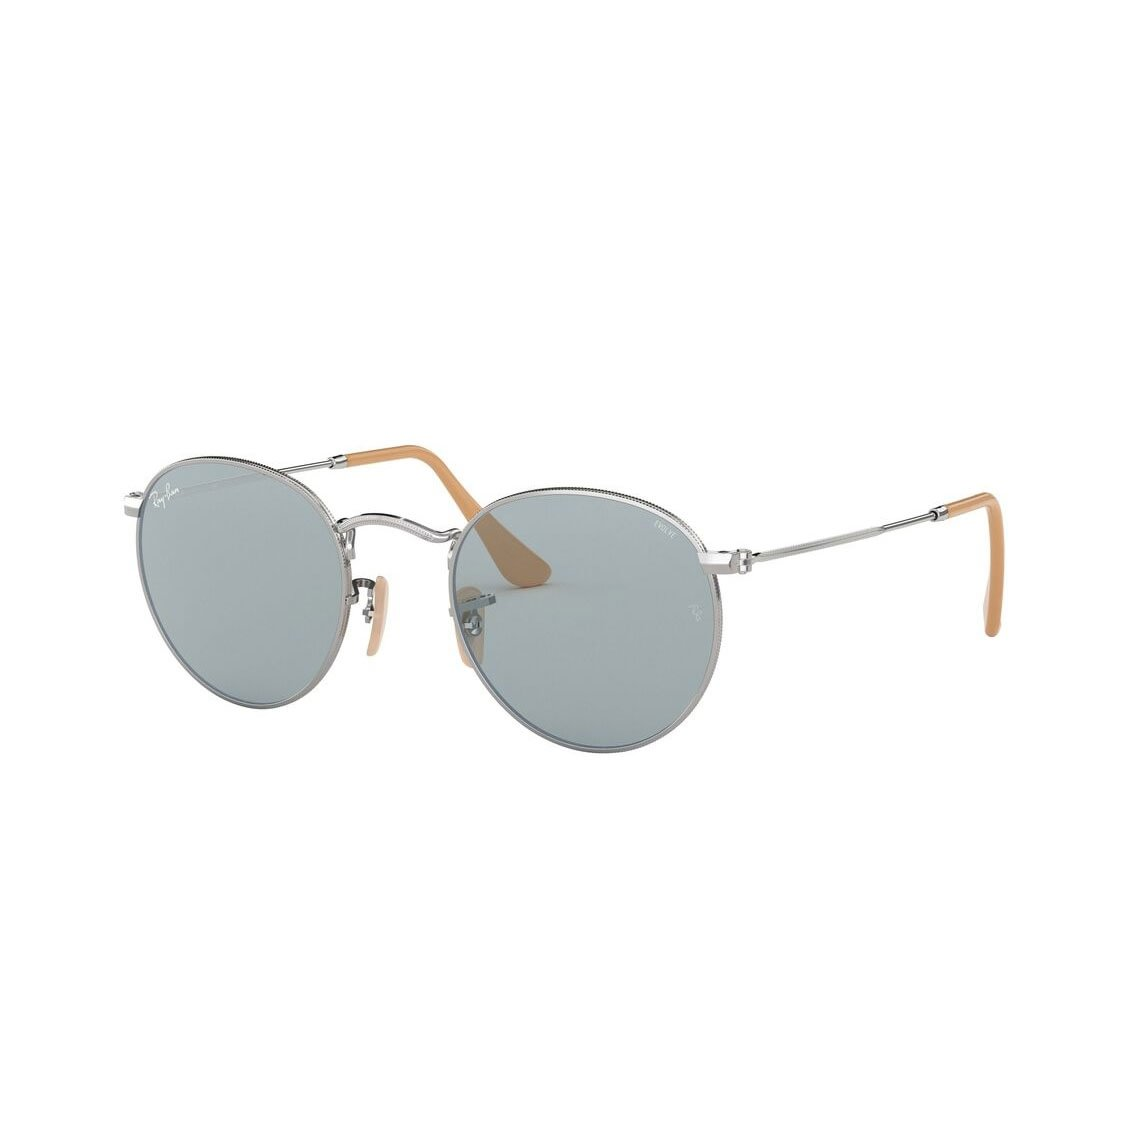 Ray-Ban Round metal RB3447 9065I5 53